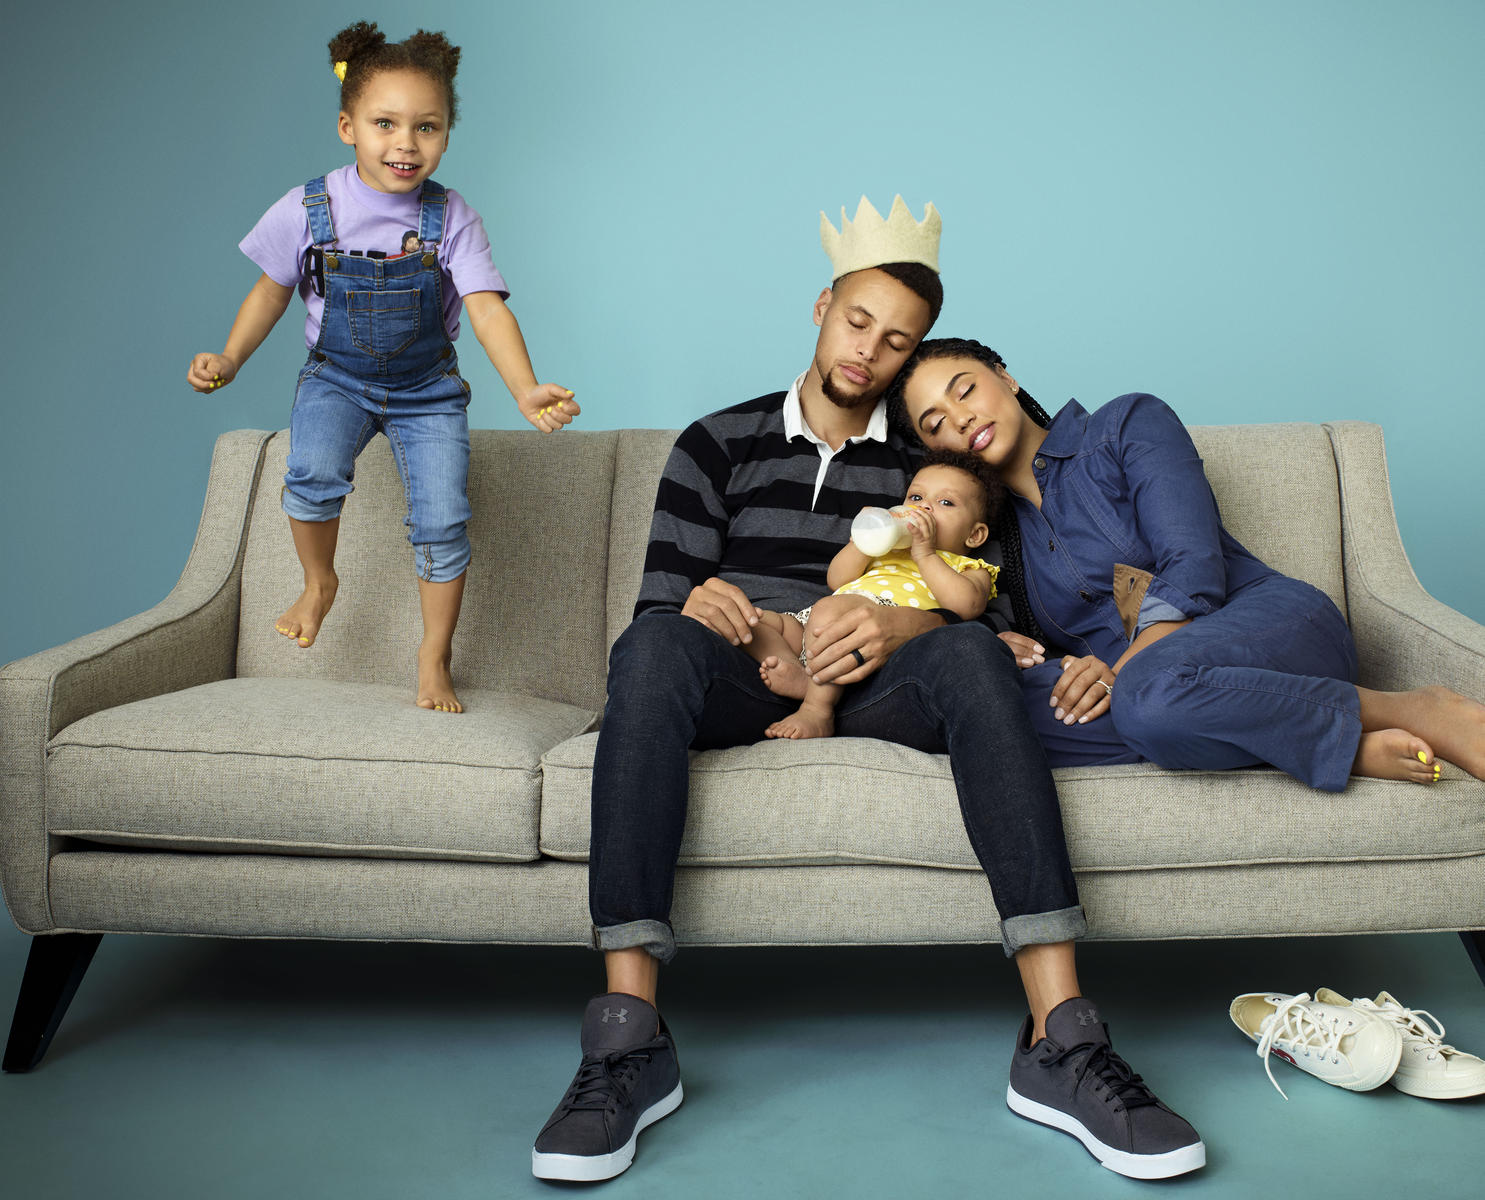 Stephen Curry and Wife Ayesha on Marriage Kids and Their Matching